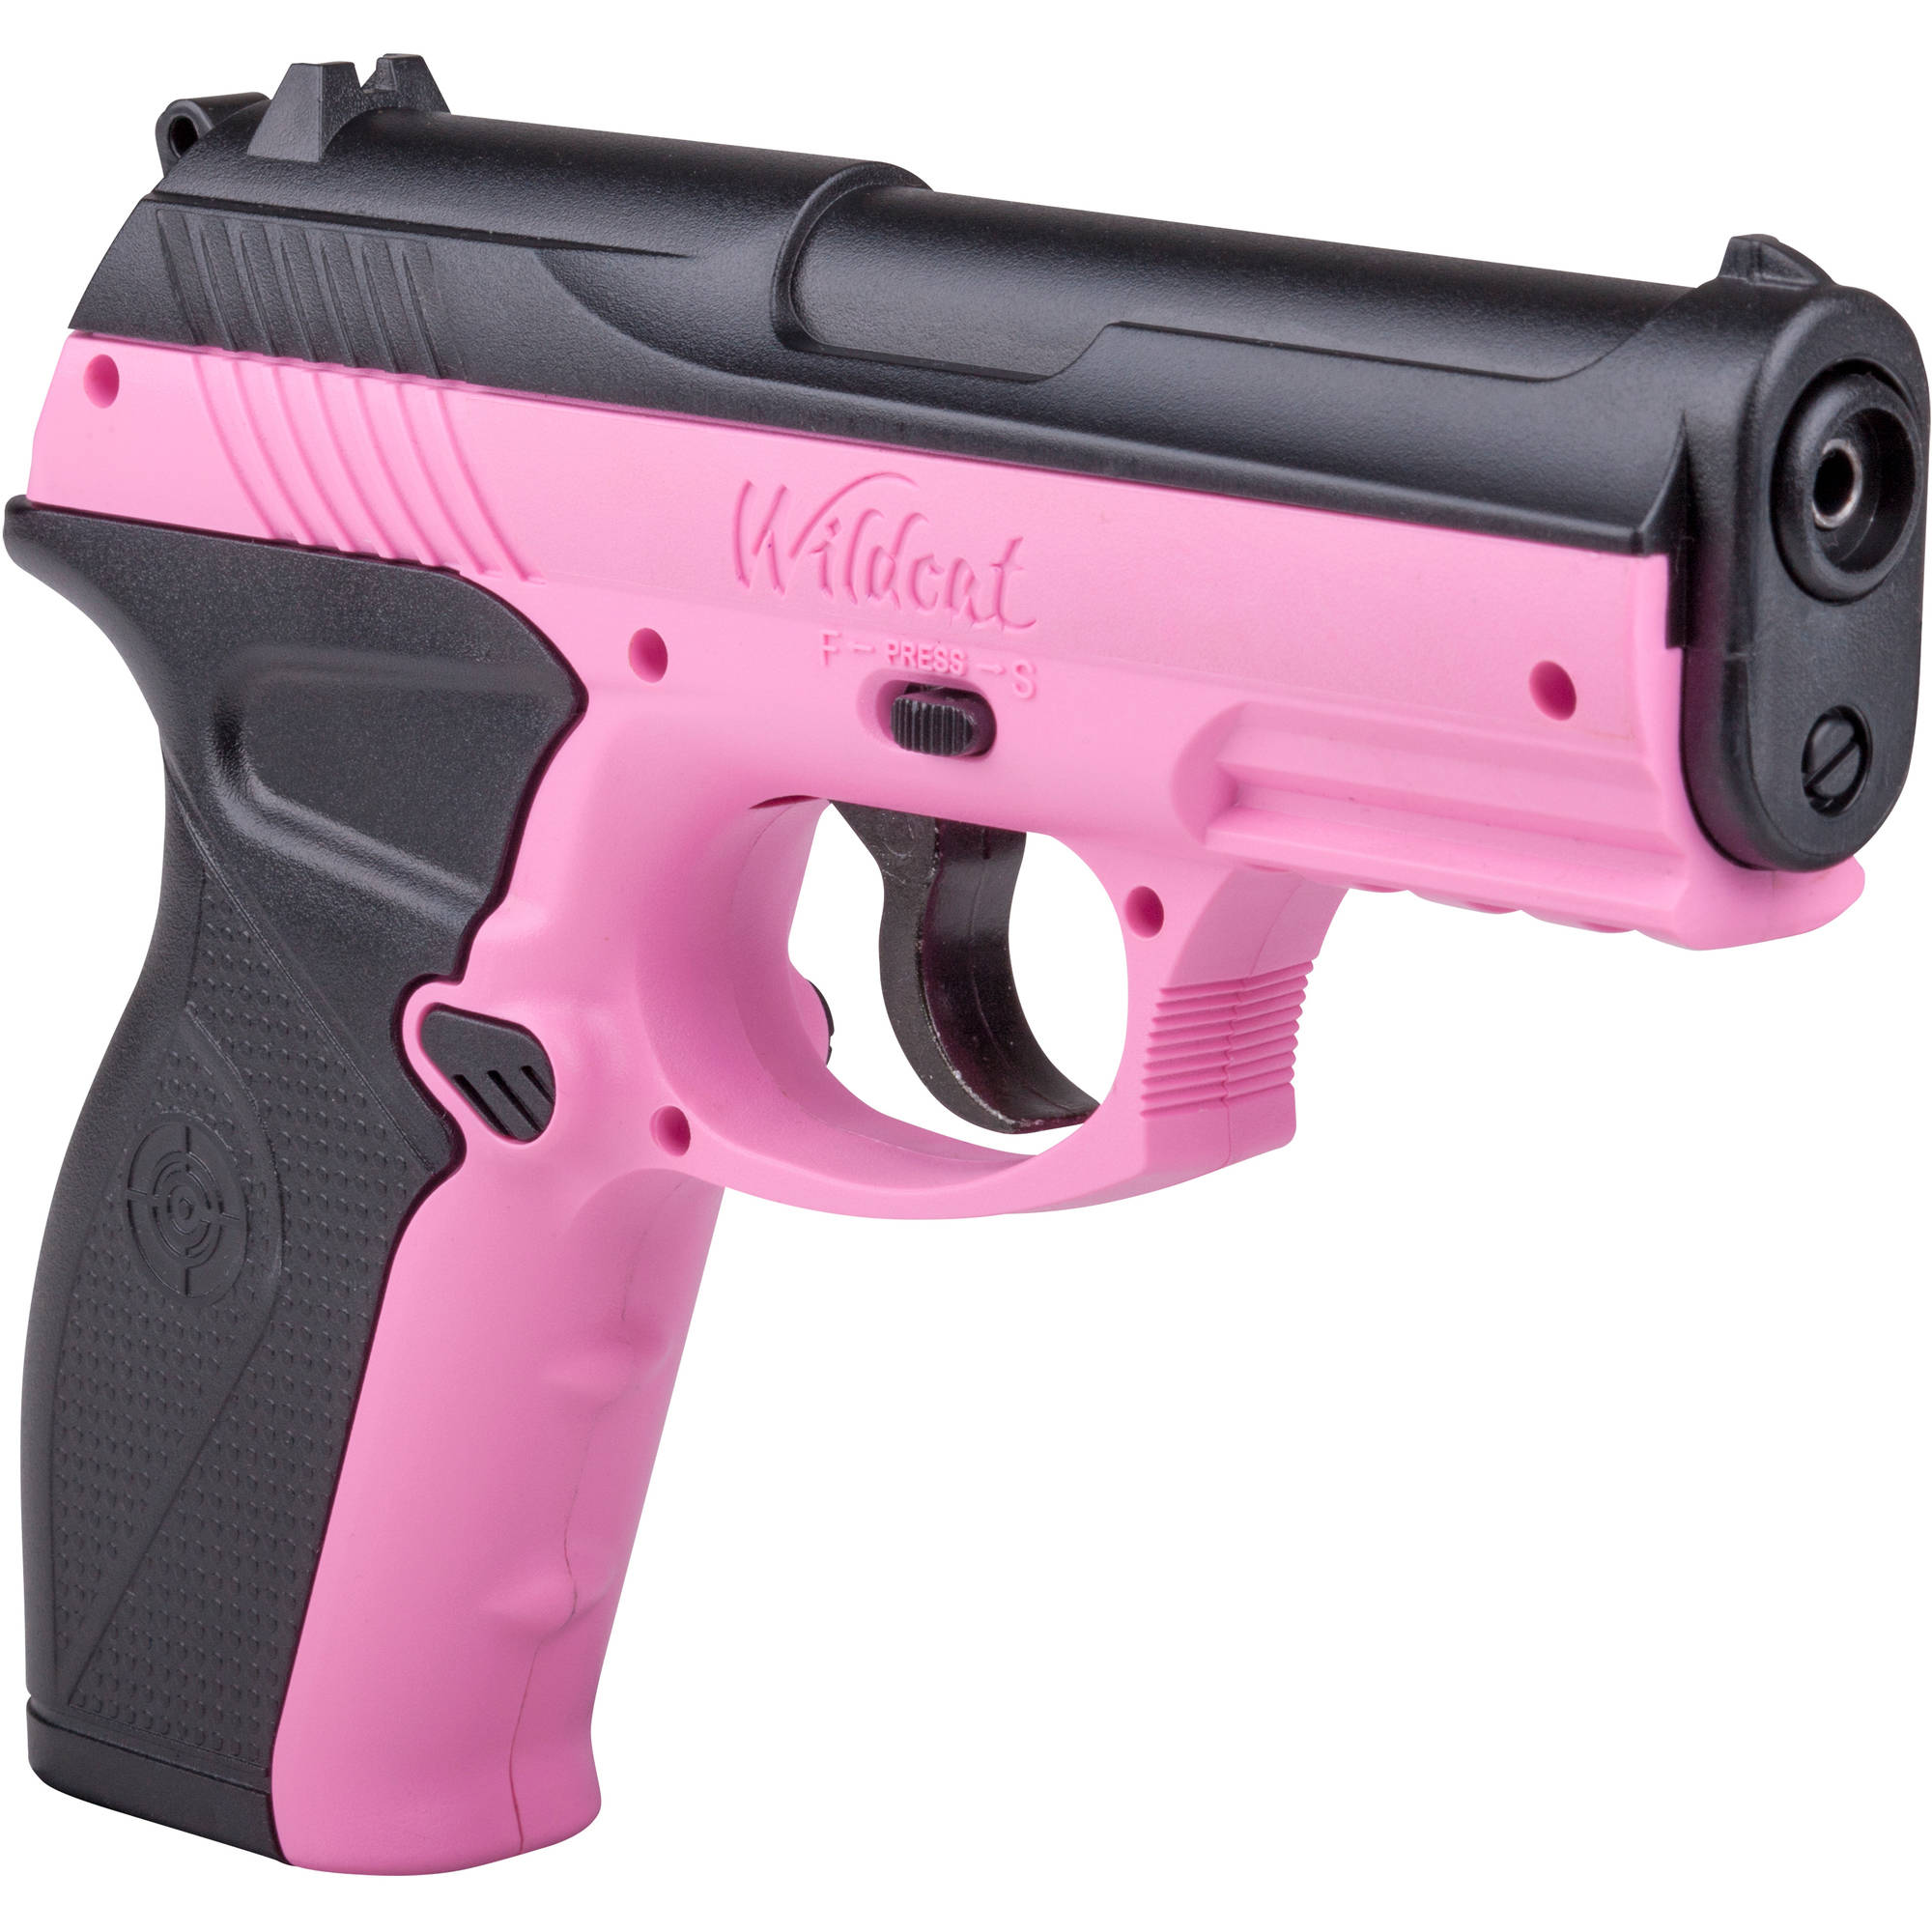 Crosman Pink P10 Wildcat .177 Caliber Semi-Auto CO2 Air Pistol, 480fps